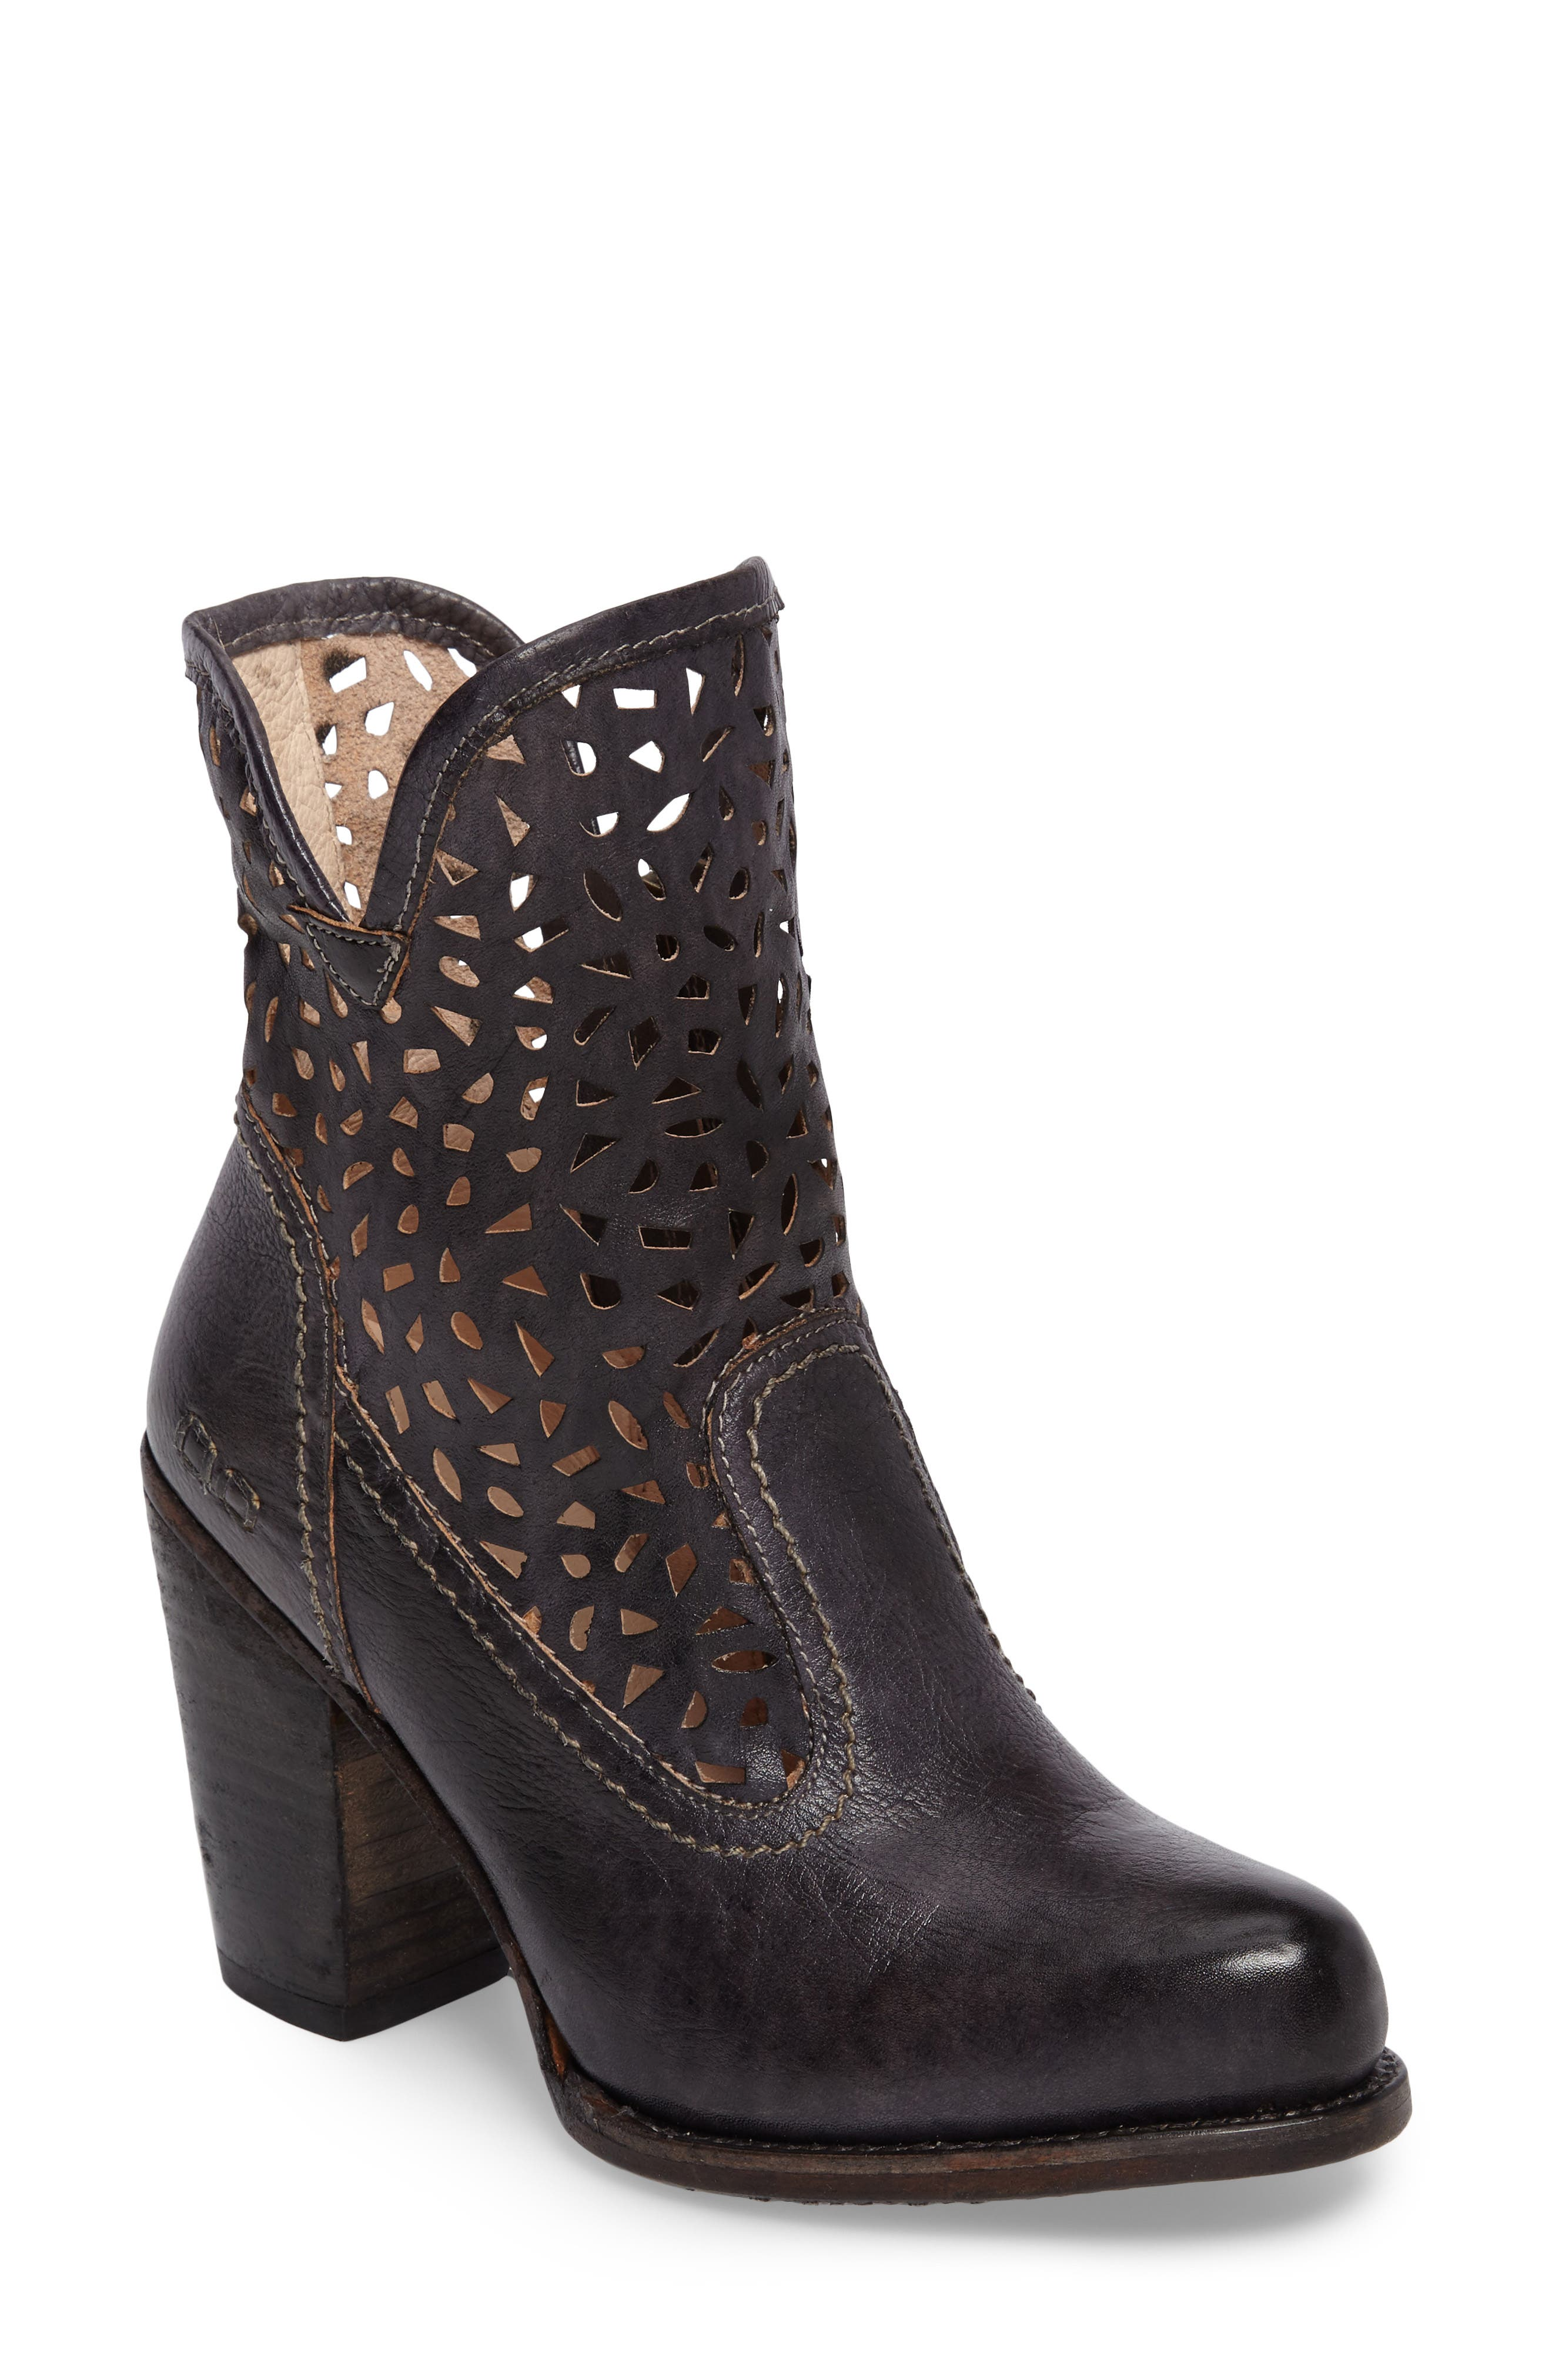 Irma Perforated Boot,                         Main,                         color, Graphito Rustic Leather